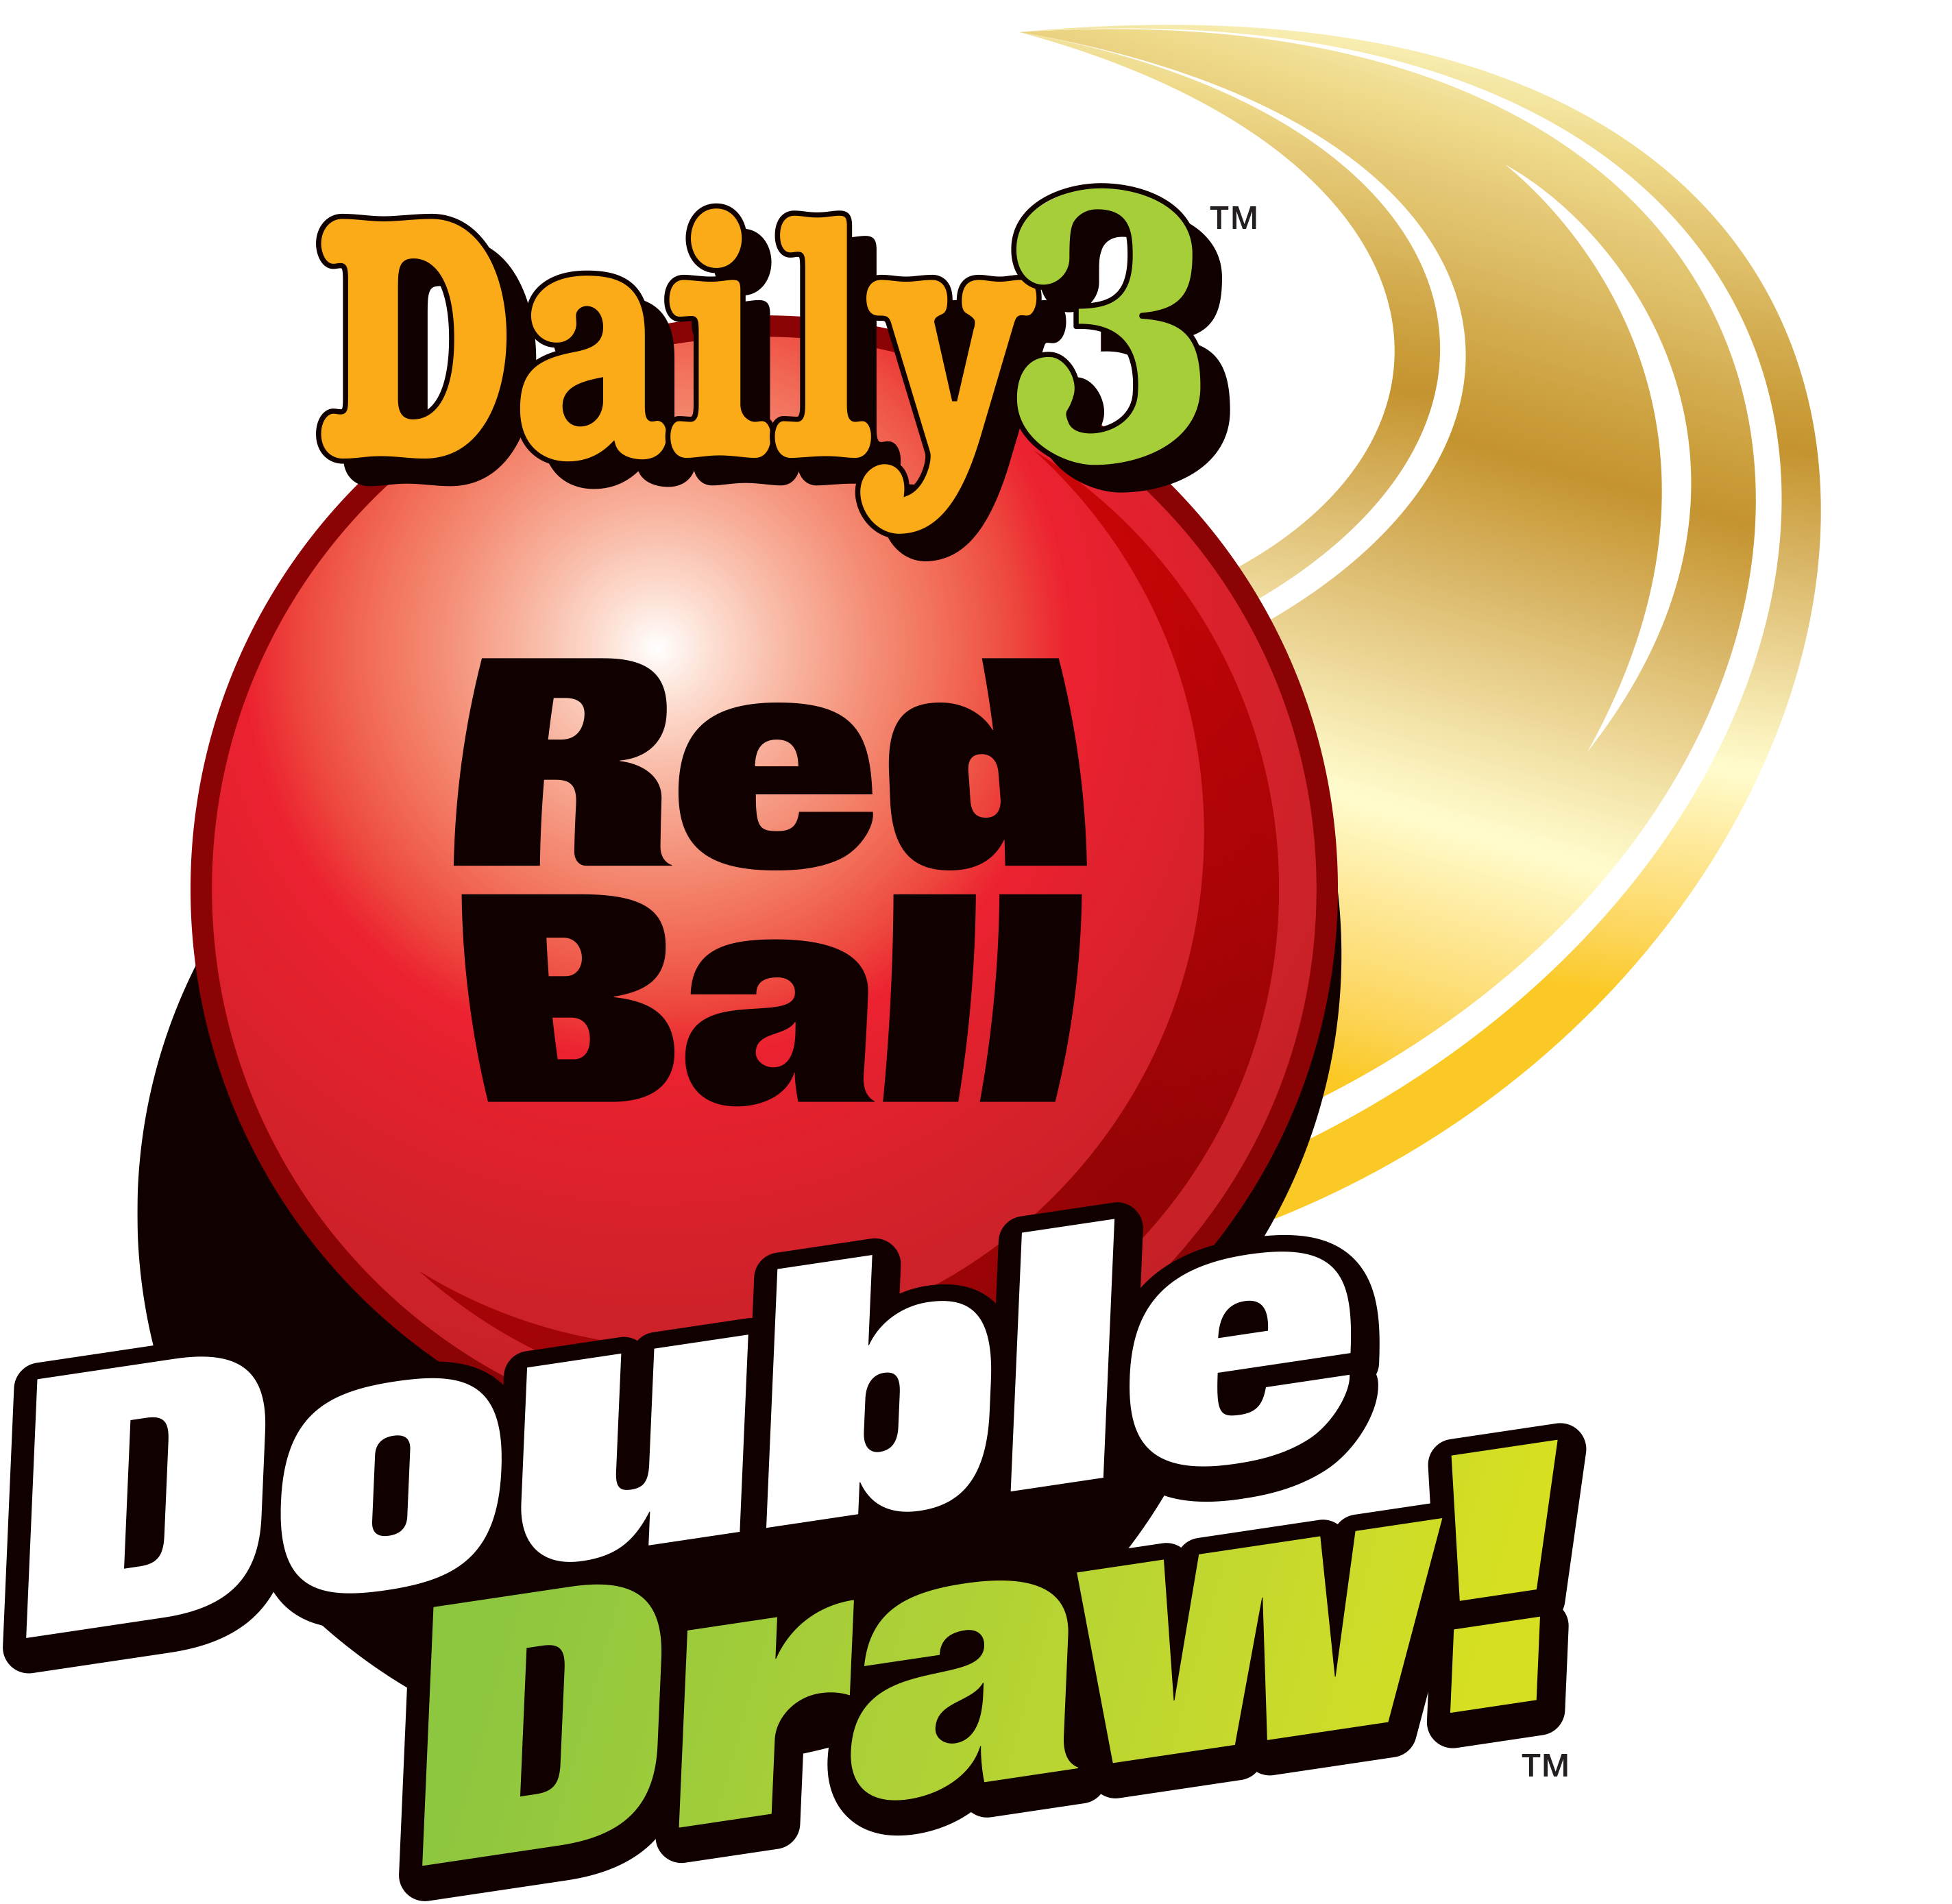 Double drawing. Red ball draw gives